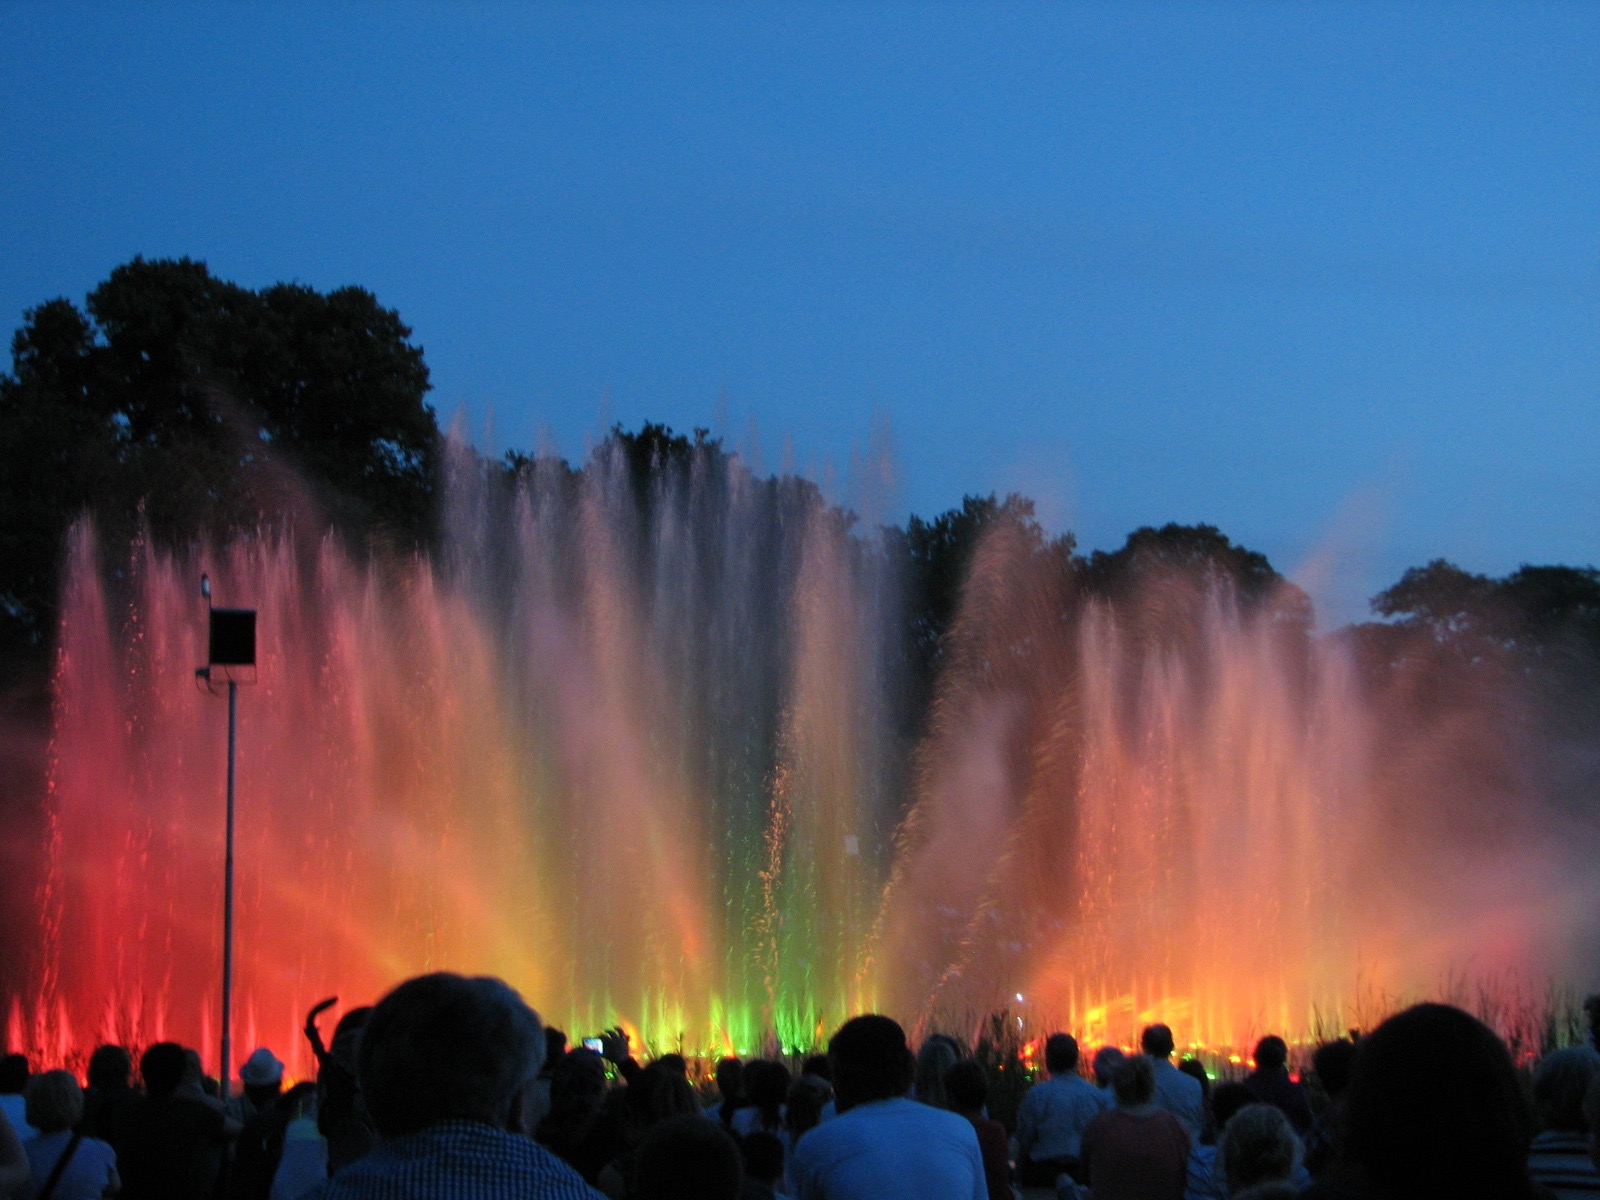 Water show in Hamburg